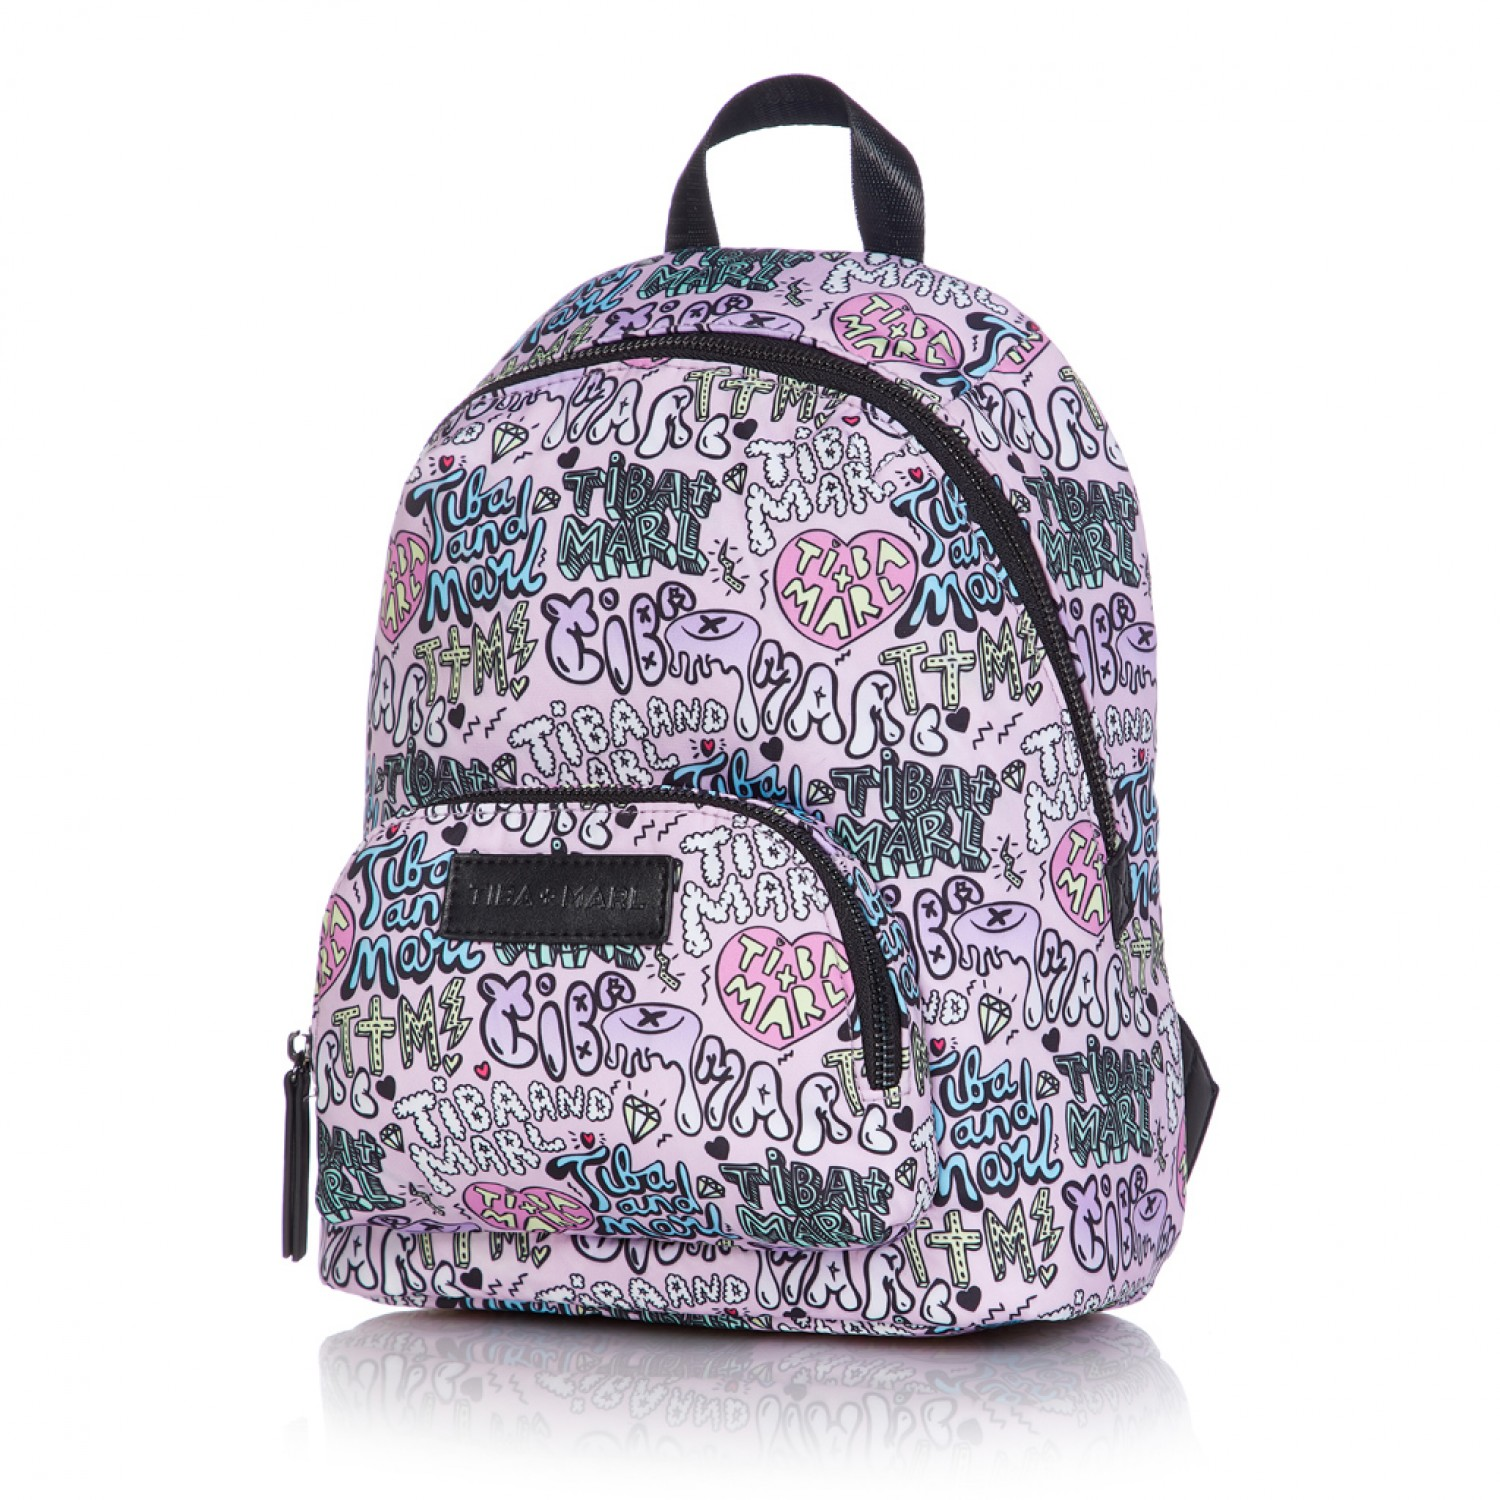 MINI ELWOOD KIDS BACKPACK 'TIBA BOOM'